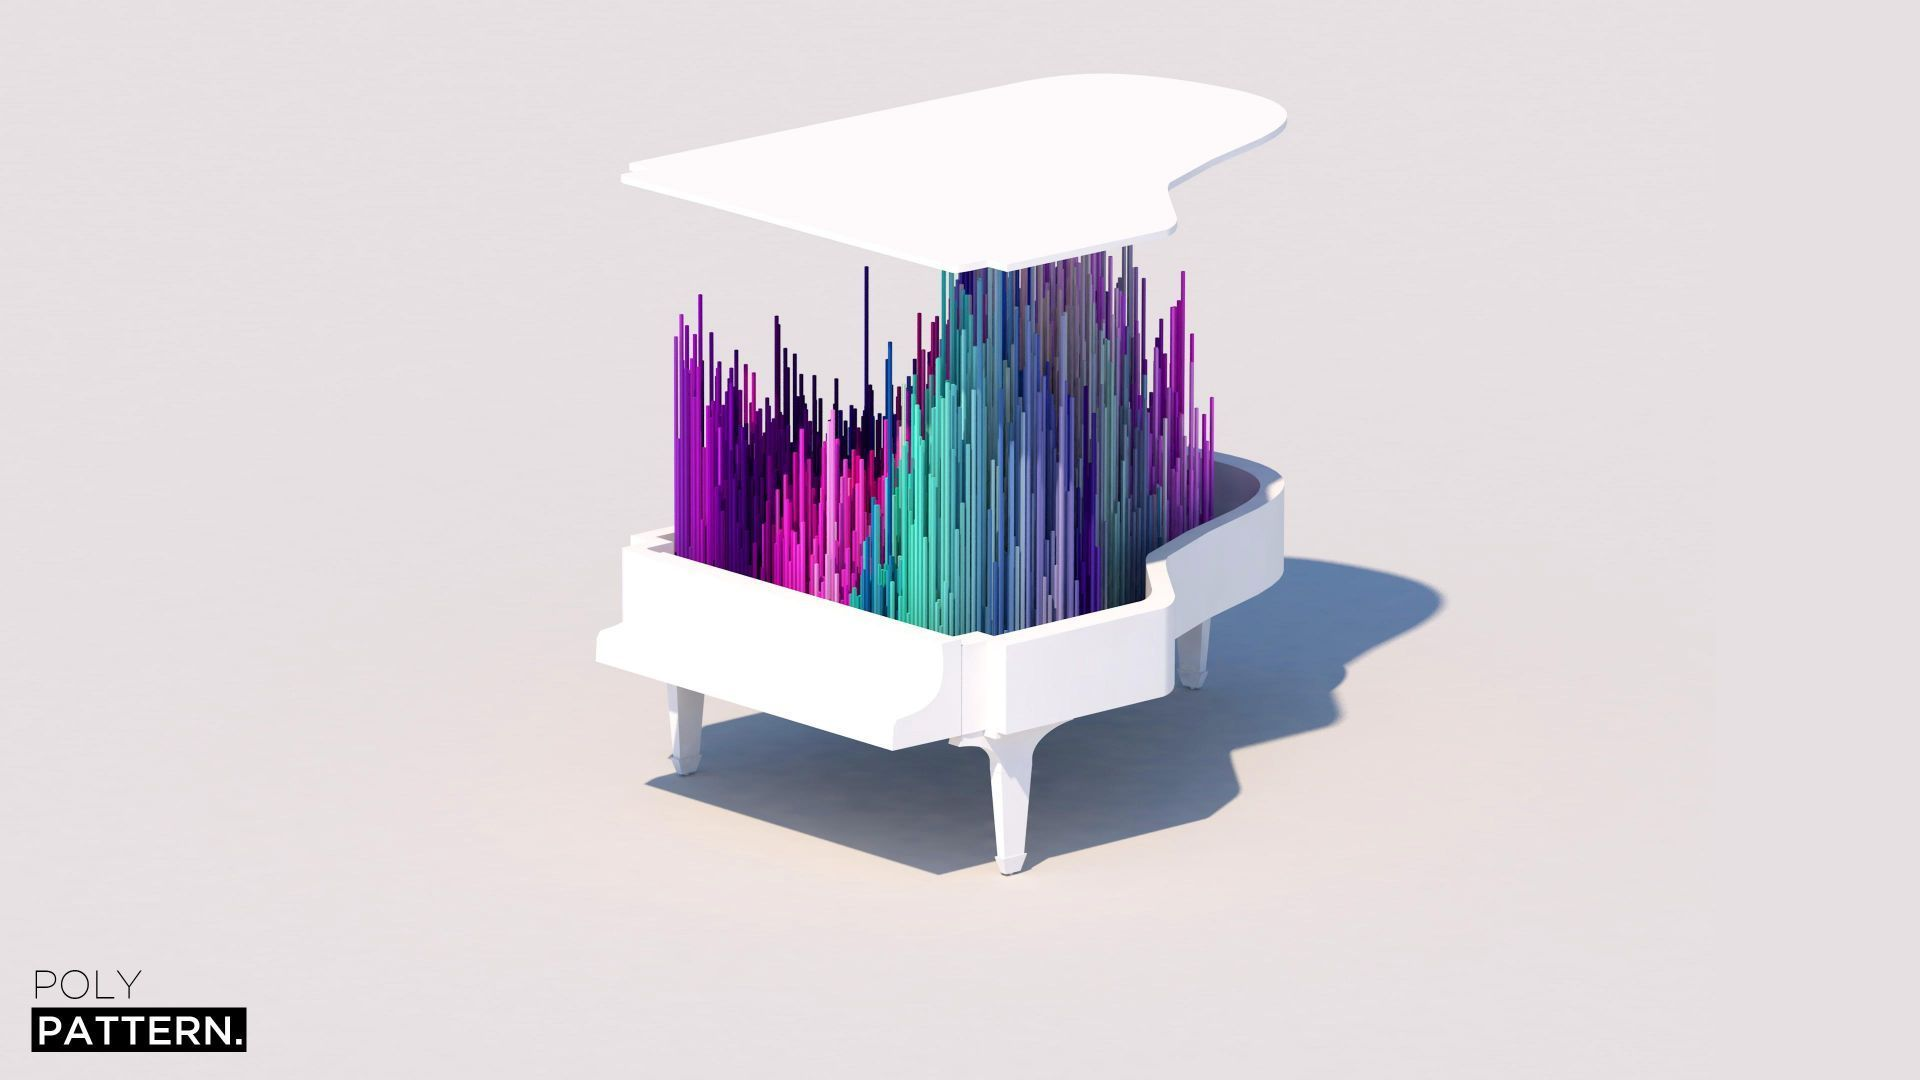 1920x1080 piano, 4k, 5k, iphone wallpaper, low poly, abstract ...